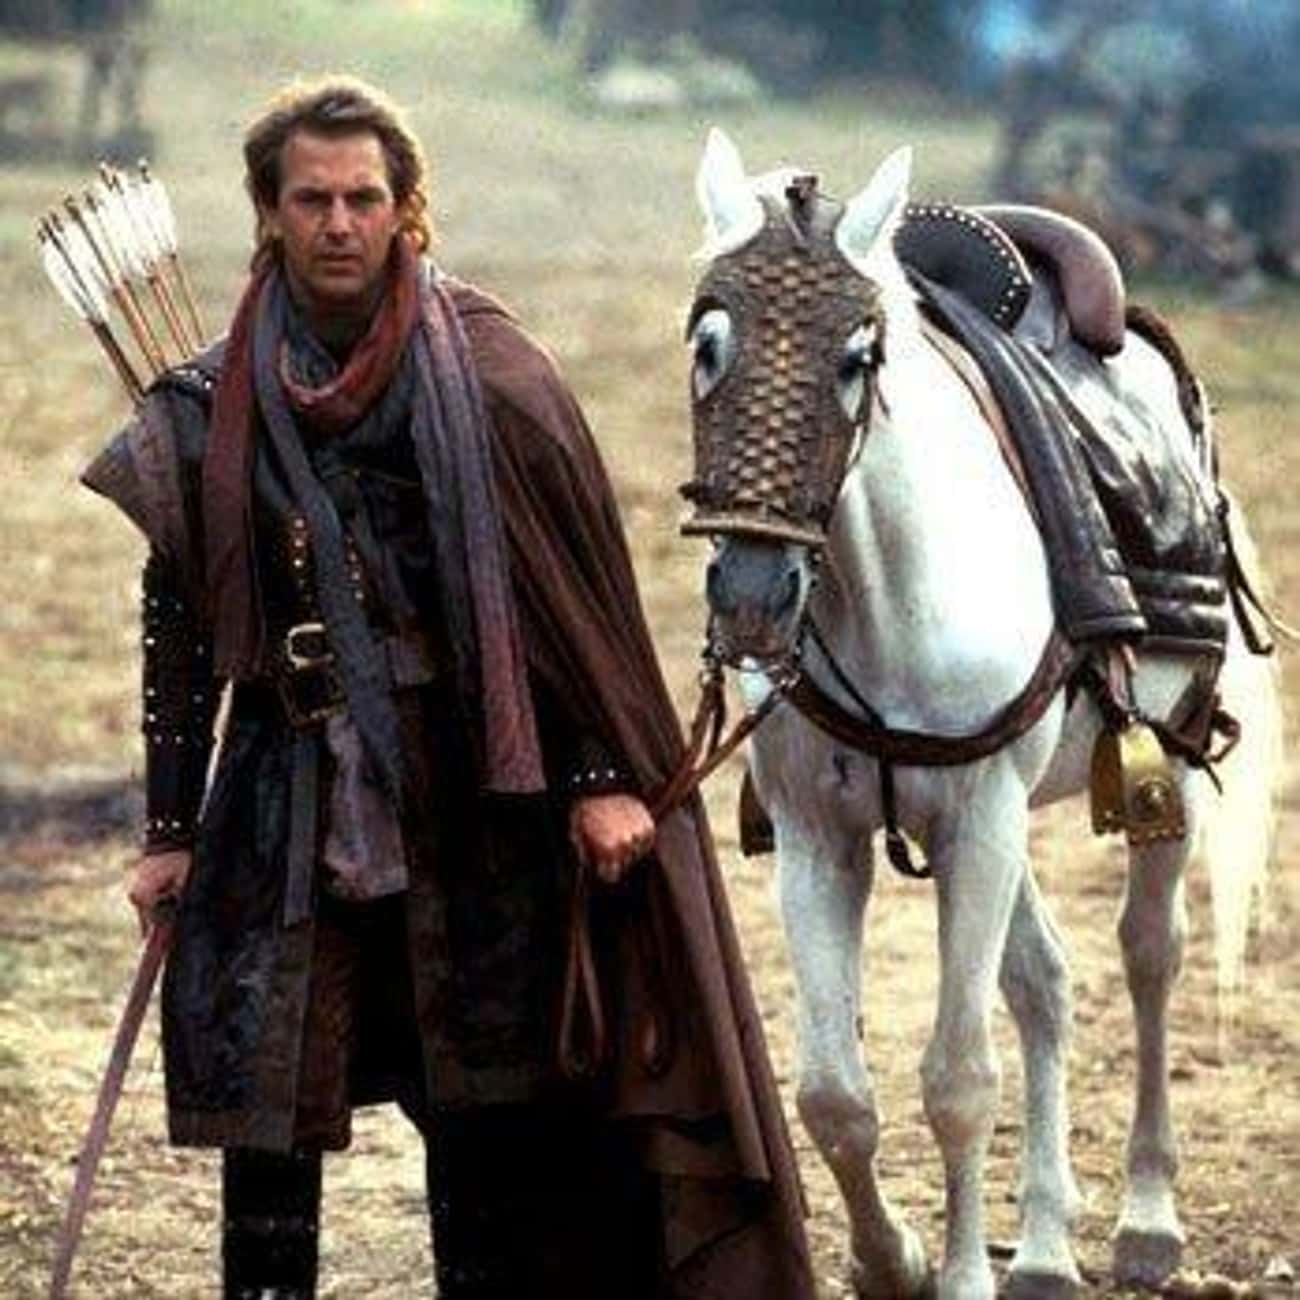 Kevin Costner And A Stuntman W is listed (or ranked) 3 on the list Behind The Scenes of 'Robin Hood: Prince Of Thieves'